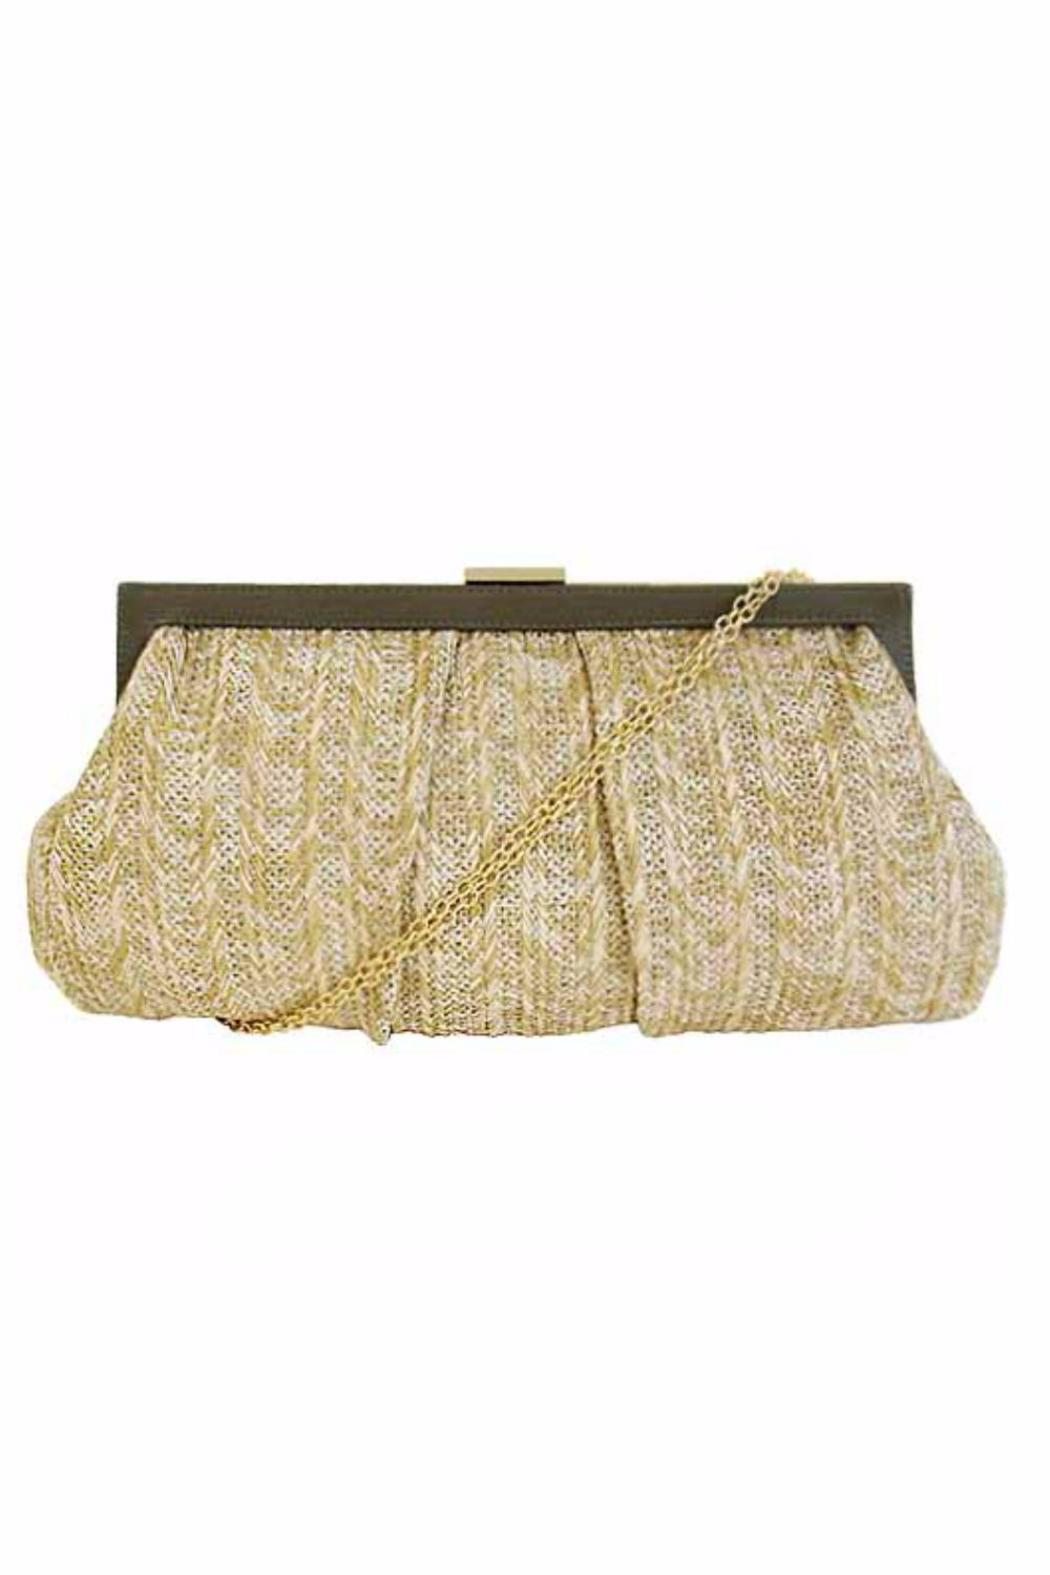 City Design Group Straw Fabric Clutch - Main Image